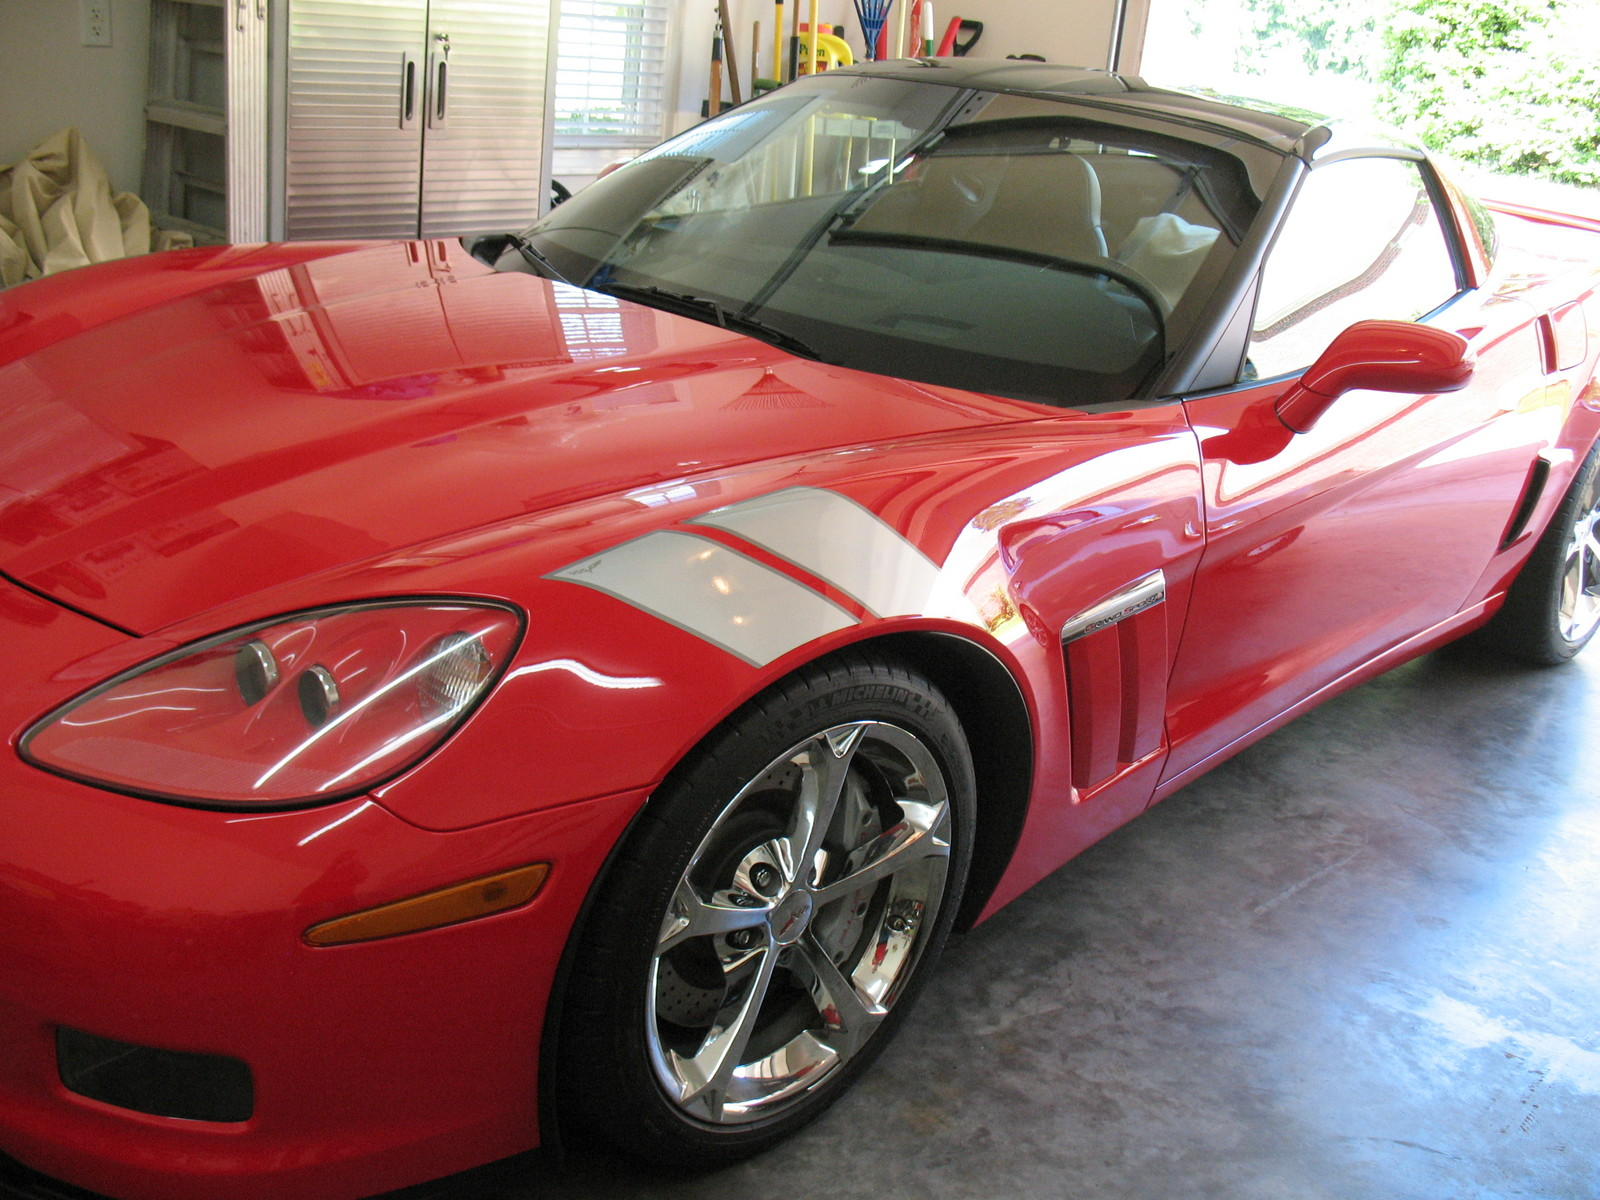 2010 Torch Red Chevrolet Corvette Grand Sport picture, mods, upgrades